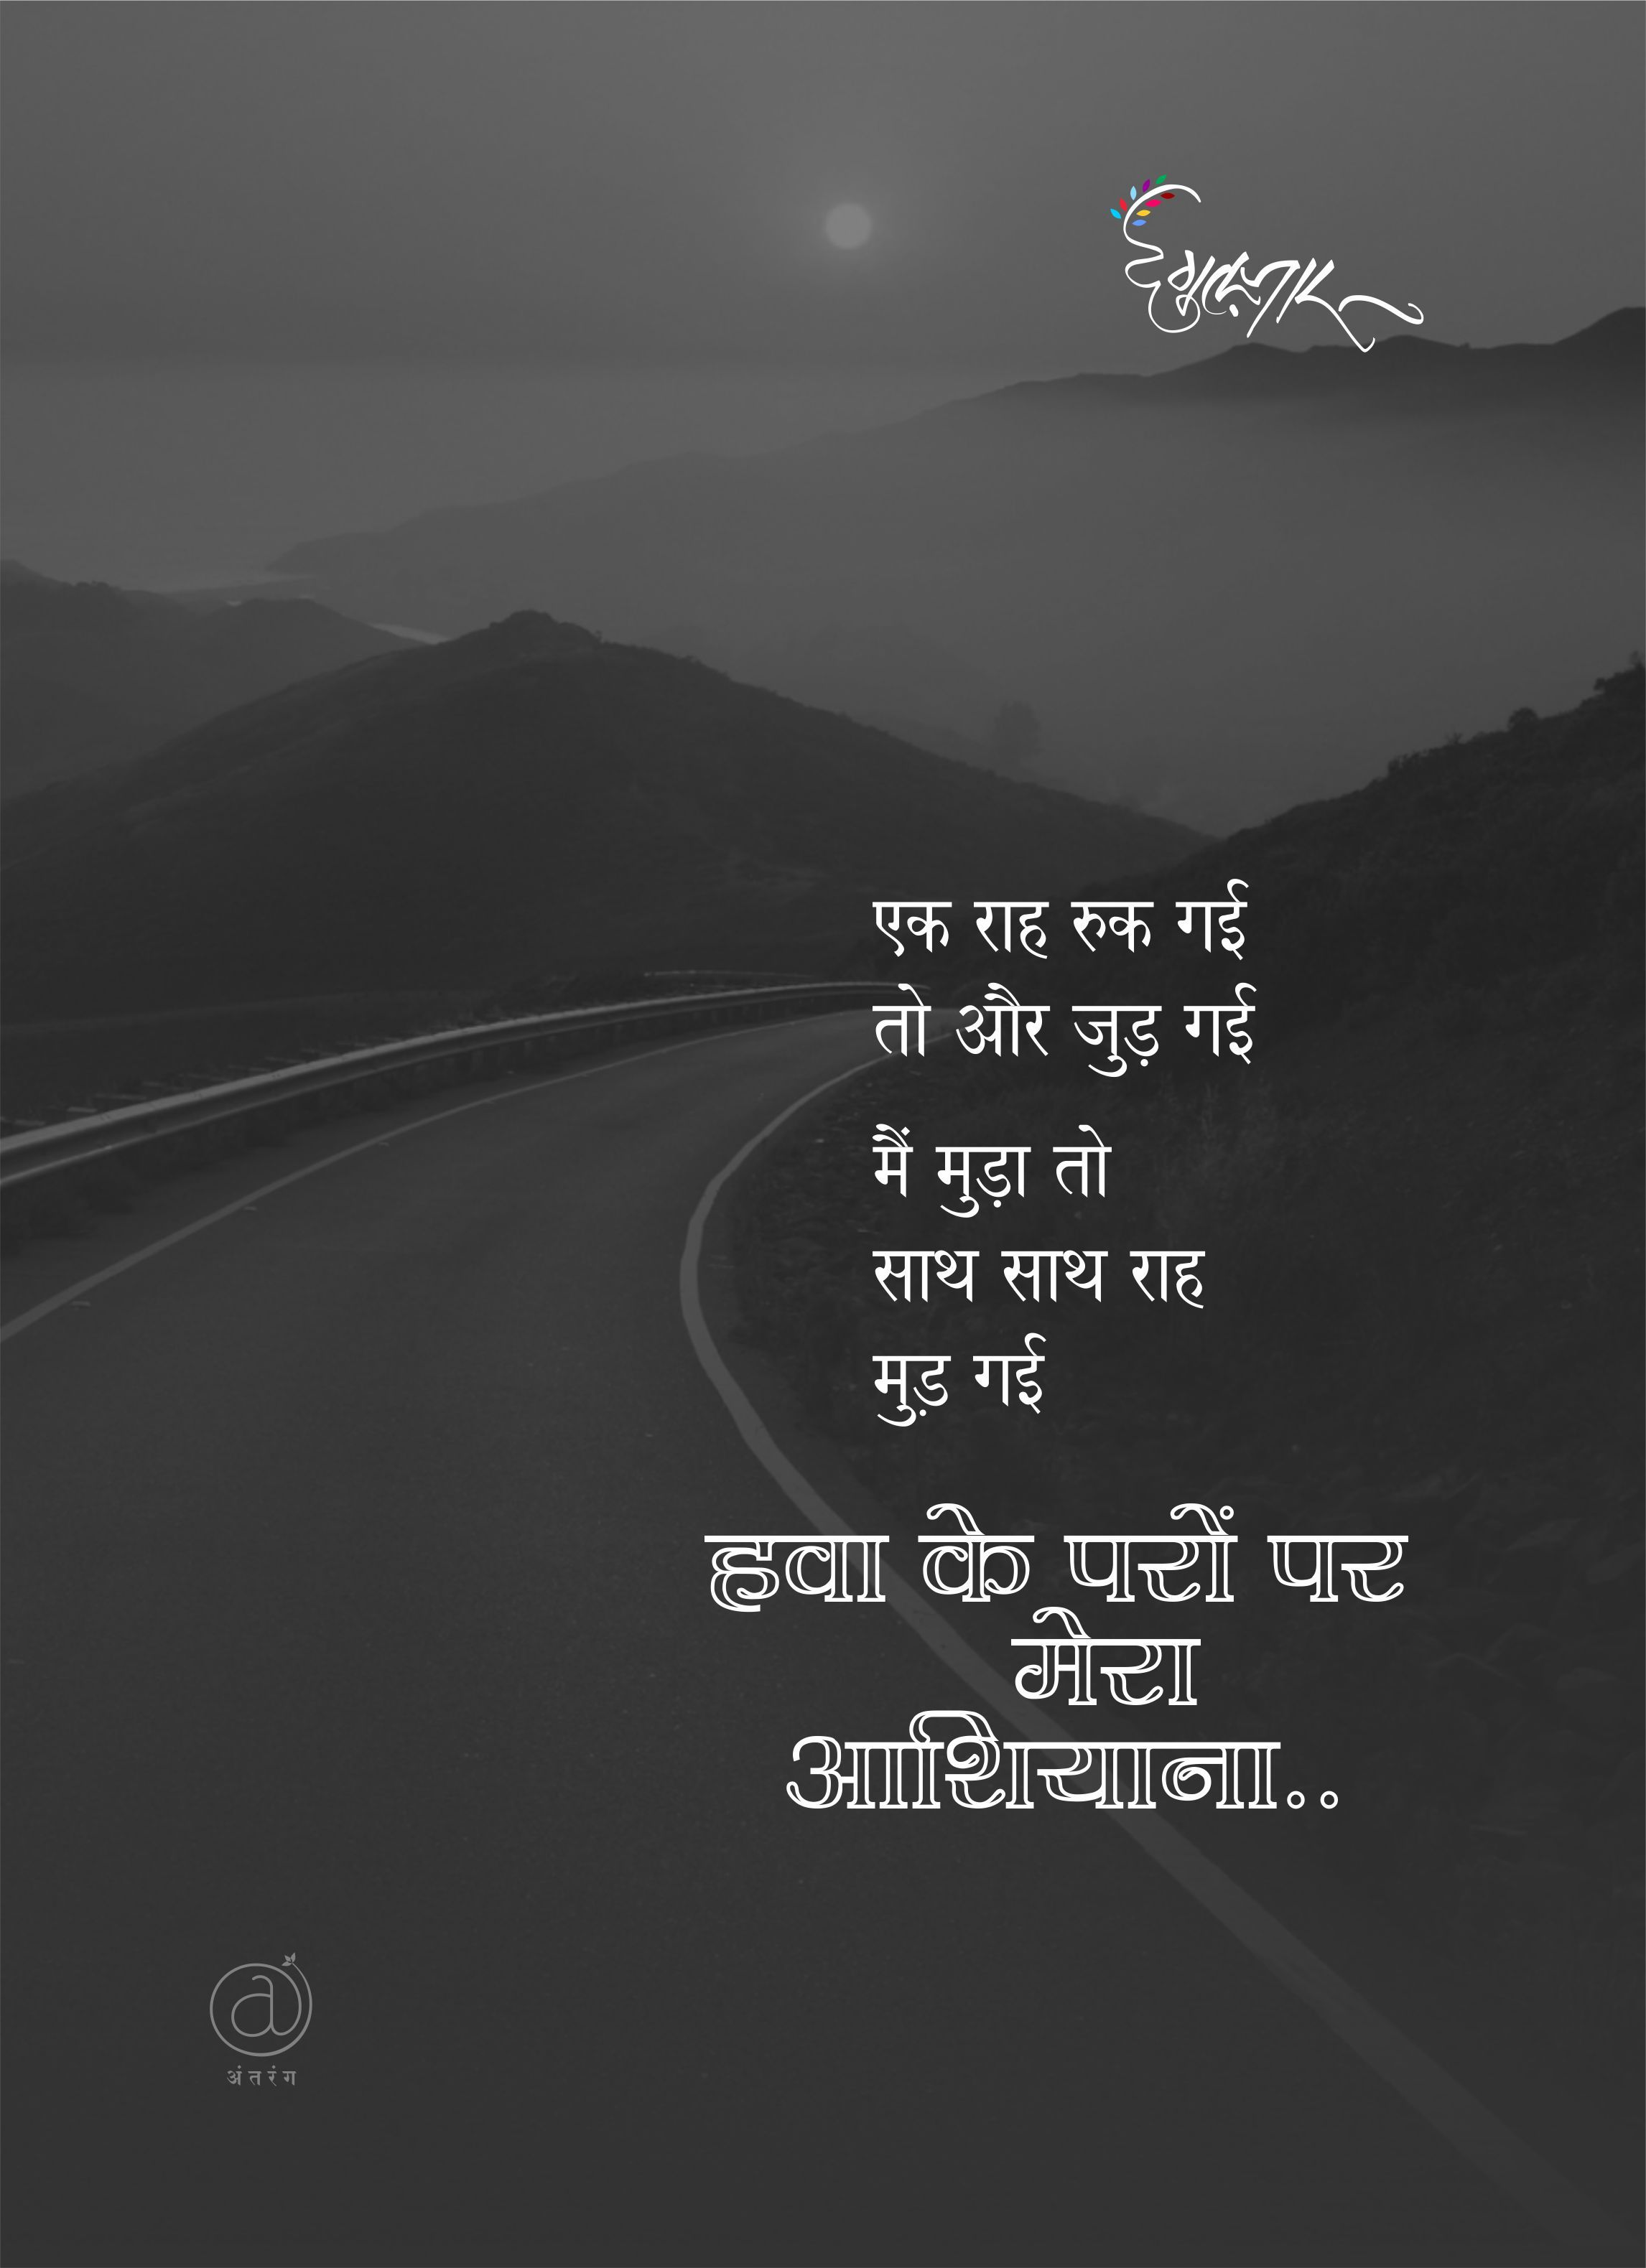 Pin By Nilesh Gitay On For Gulzar Poem Hindi Quotes Gulzar Poetry